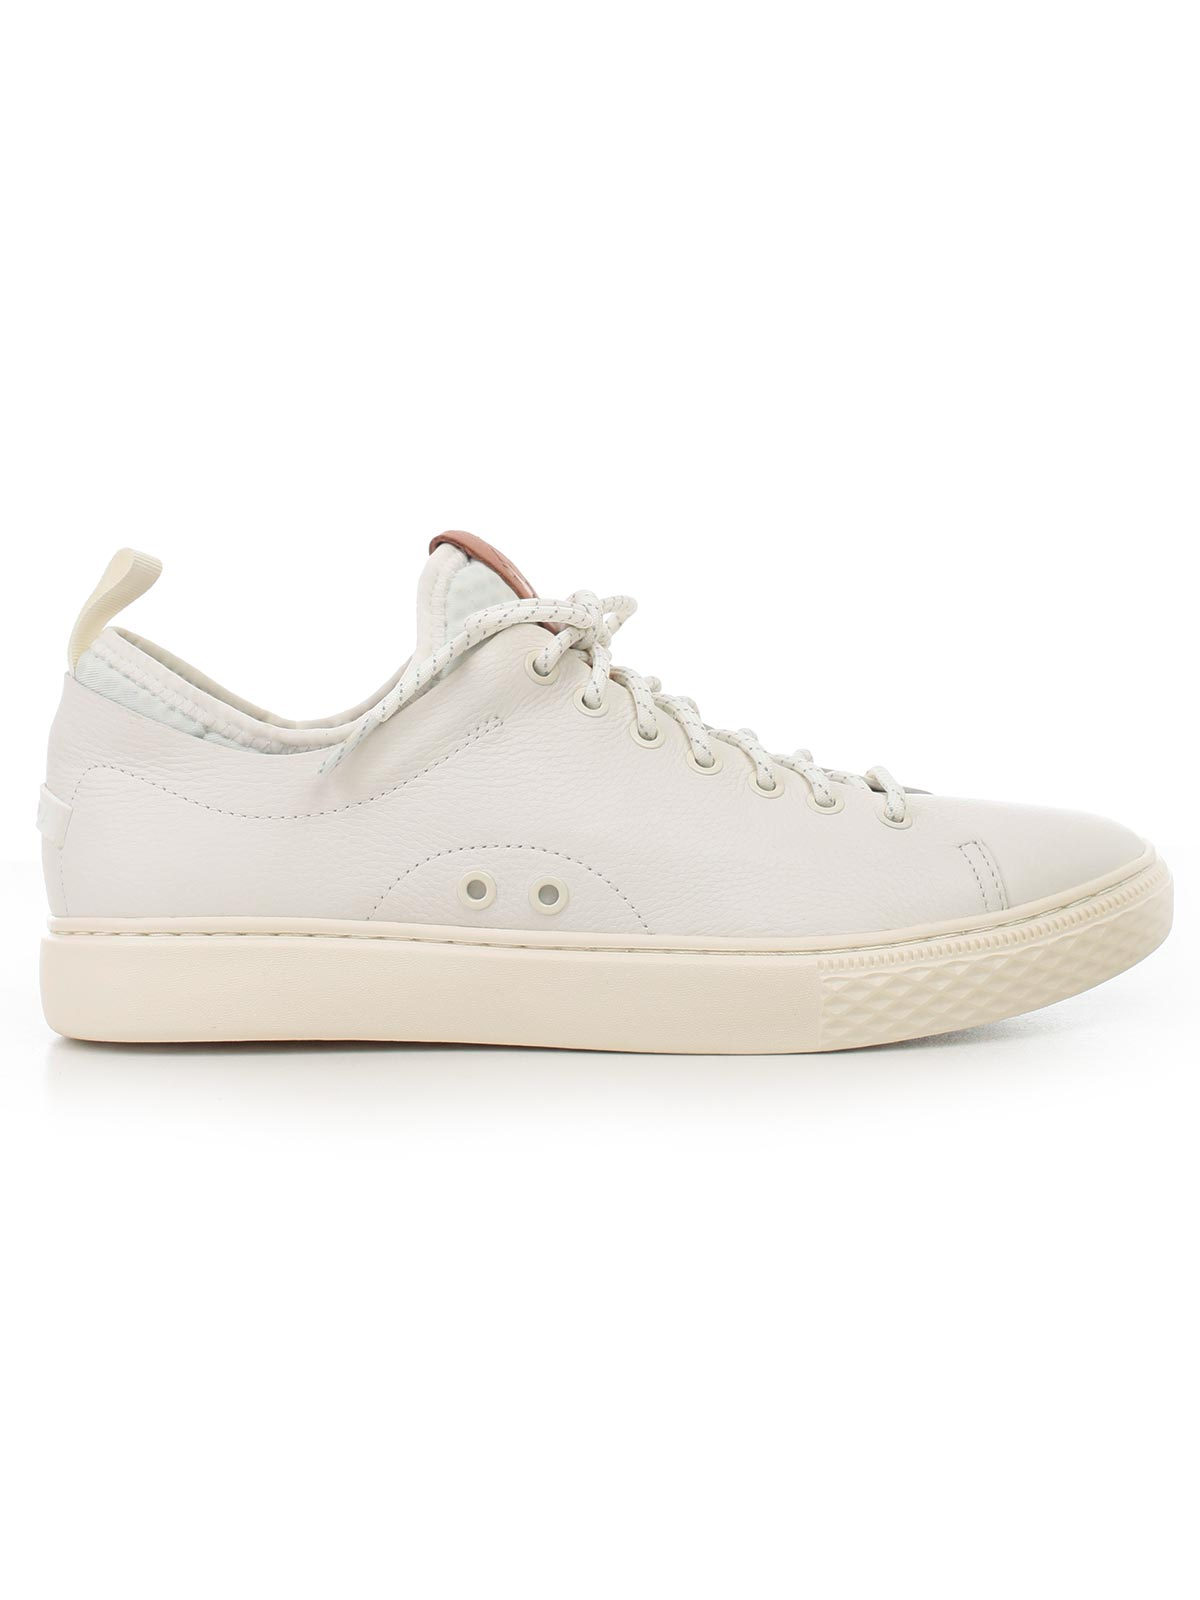 Shoes Shoes Ralph Polo Ralph Lauren Lauren Lauren Shoes Ralph Polo Polo 8kPwXNn0O